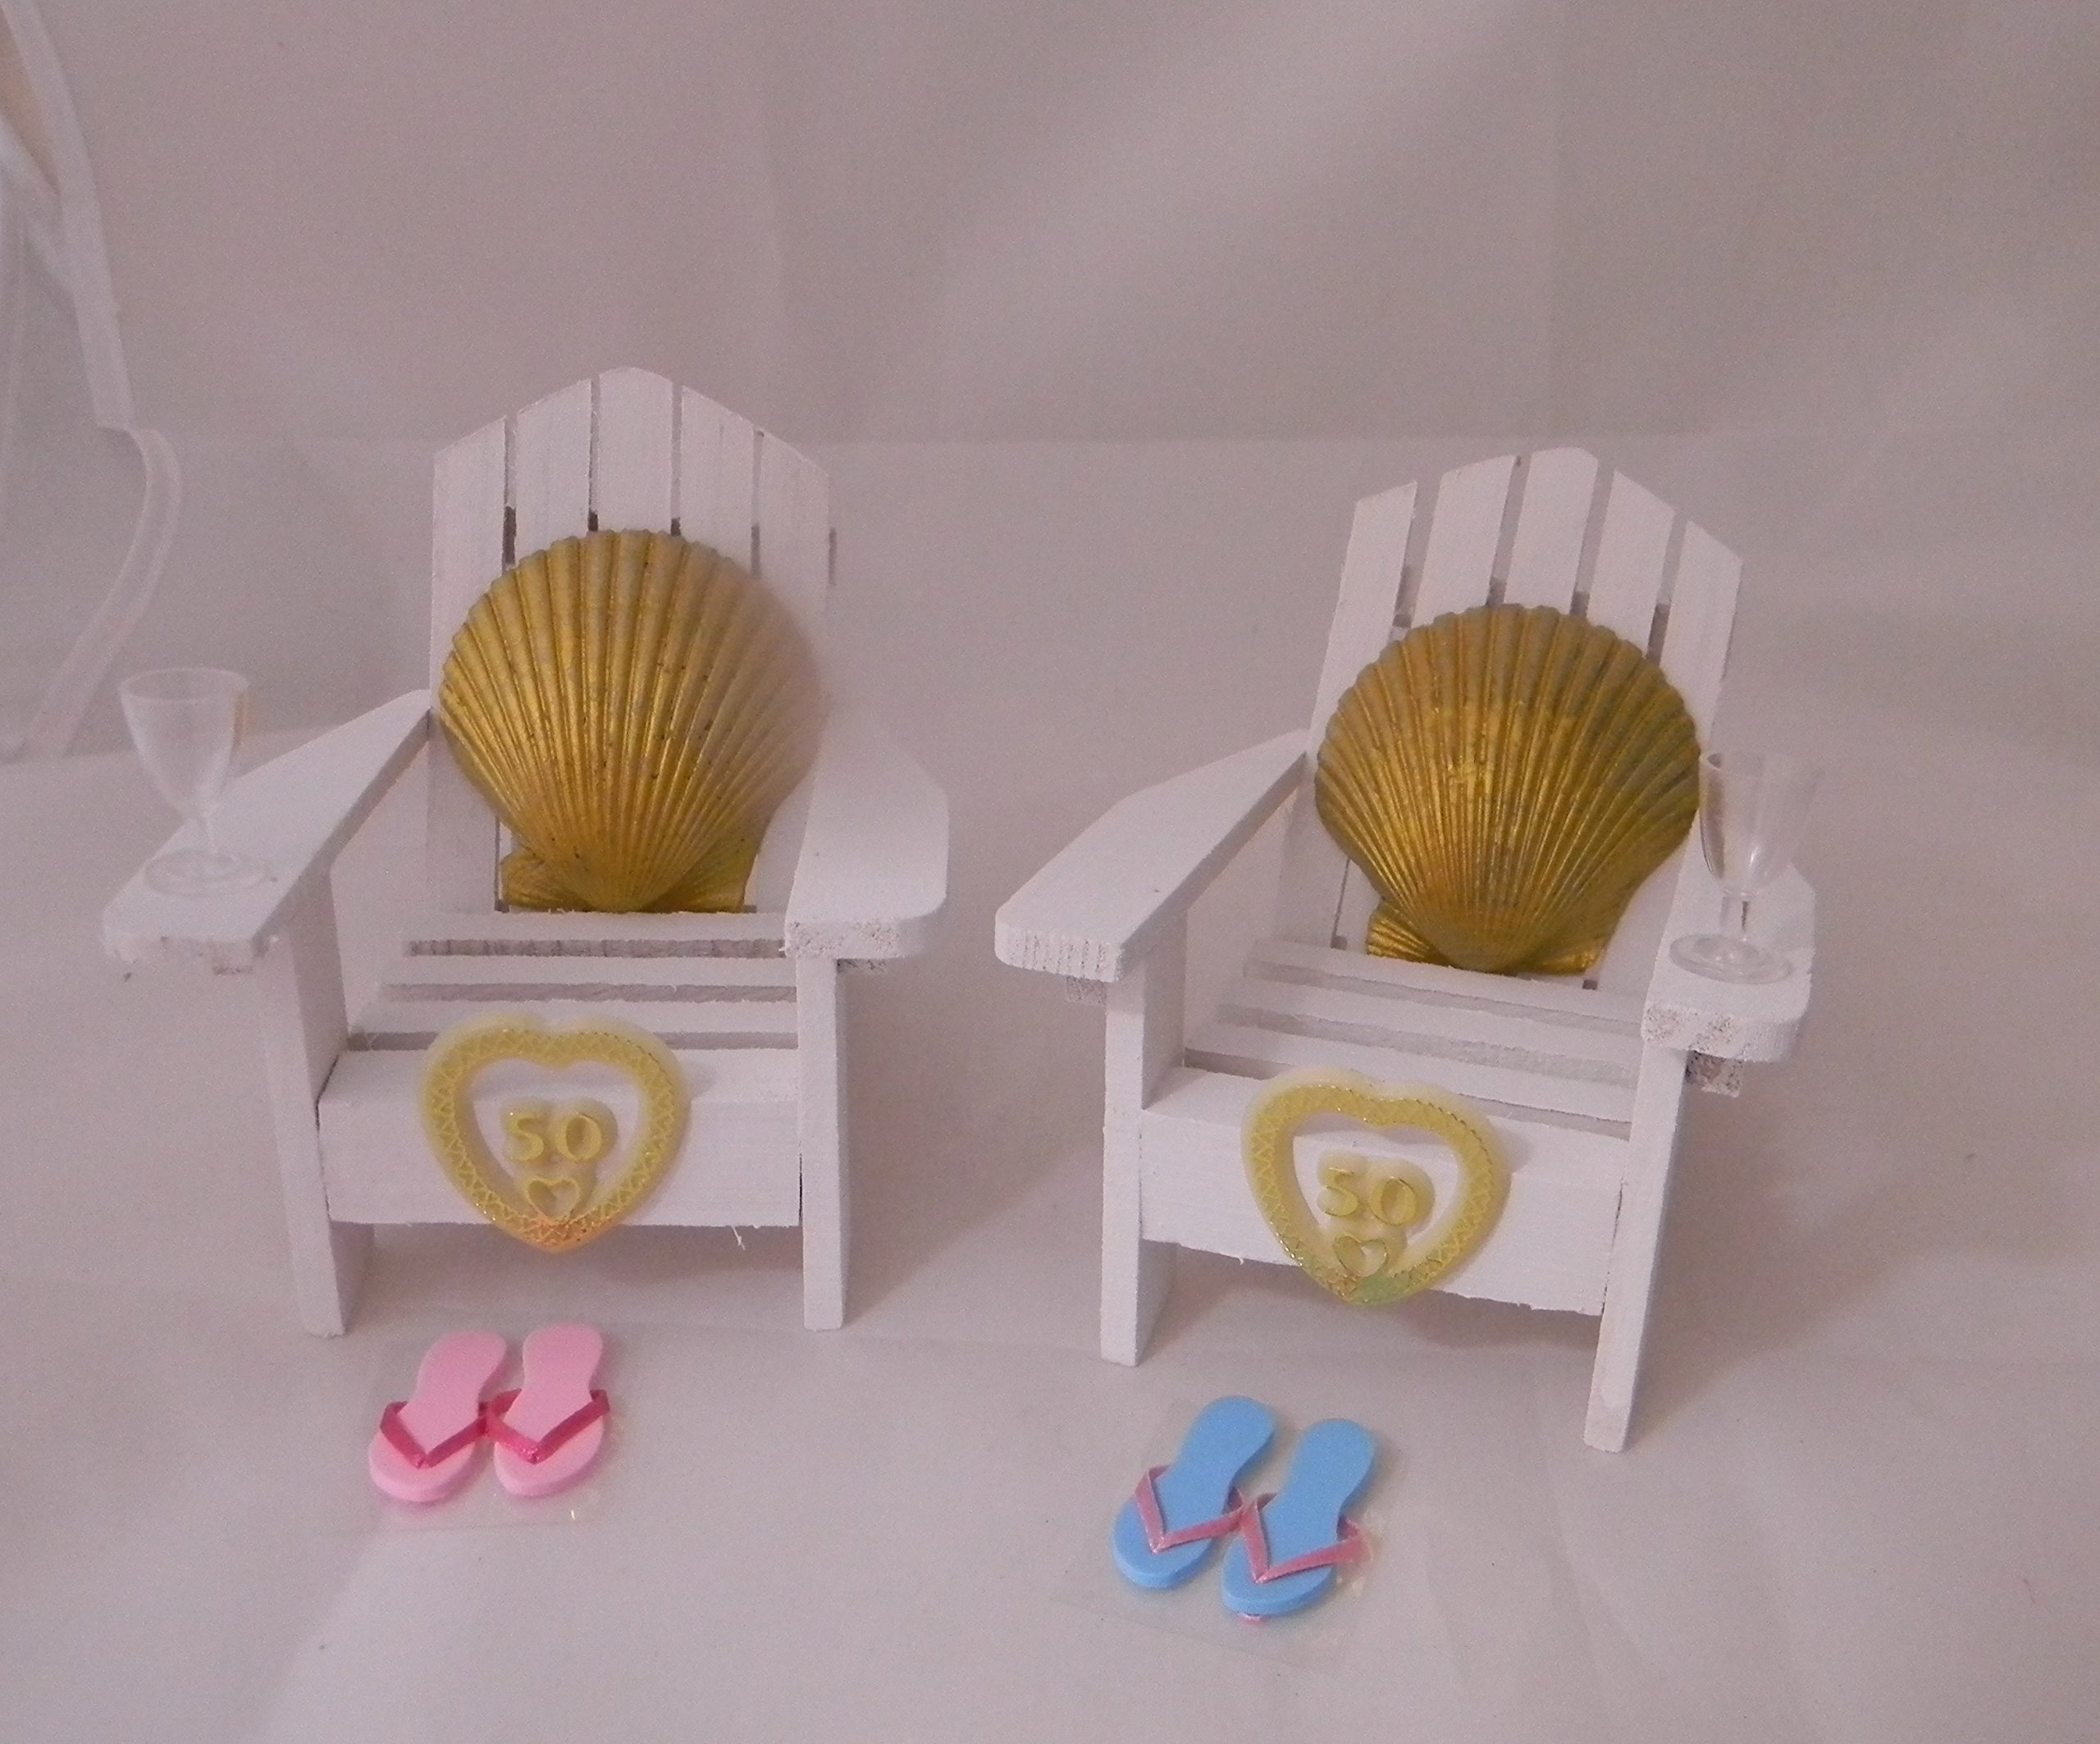 Wedding 50th Anniversary Adirondack Chairs Beach Gold Seashell Cake Topper by Design by Suzanne (Image #1)